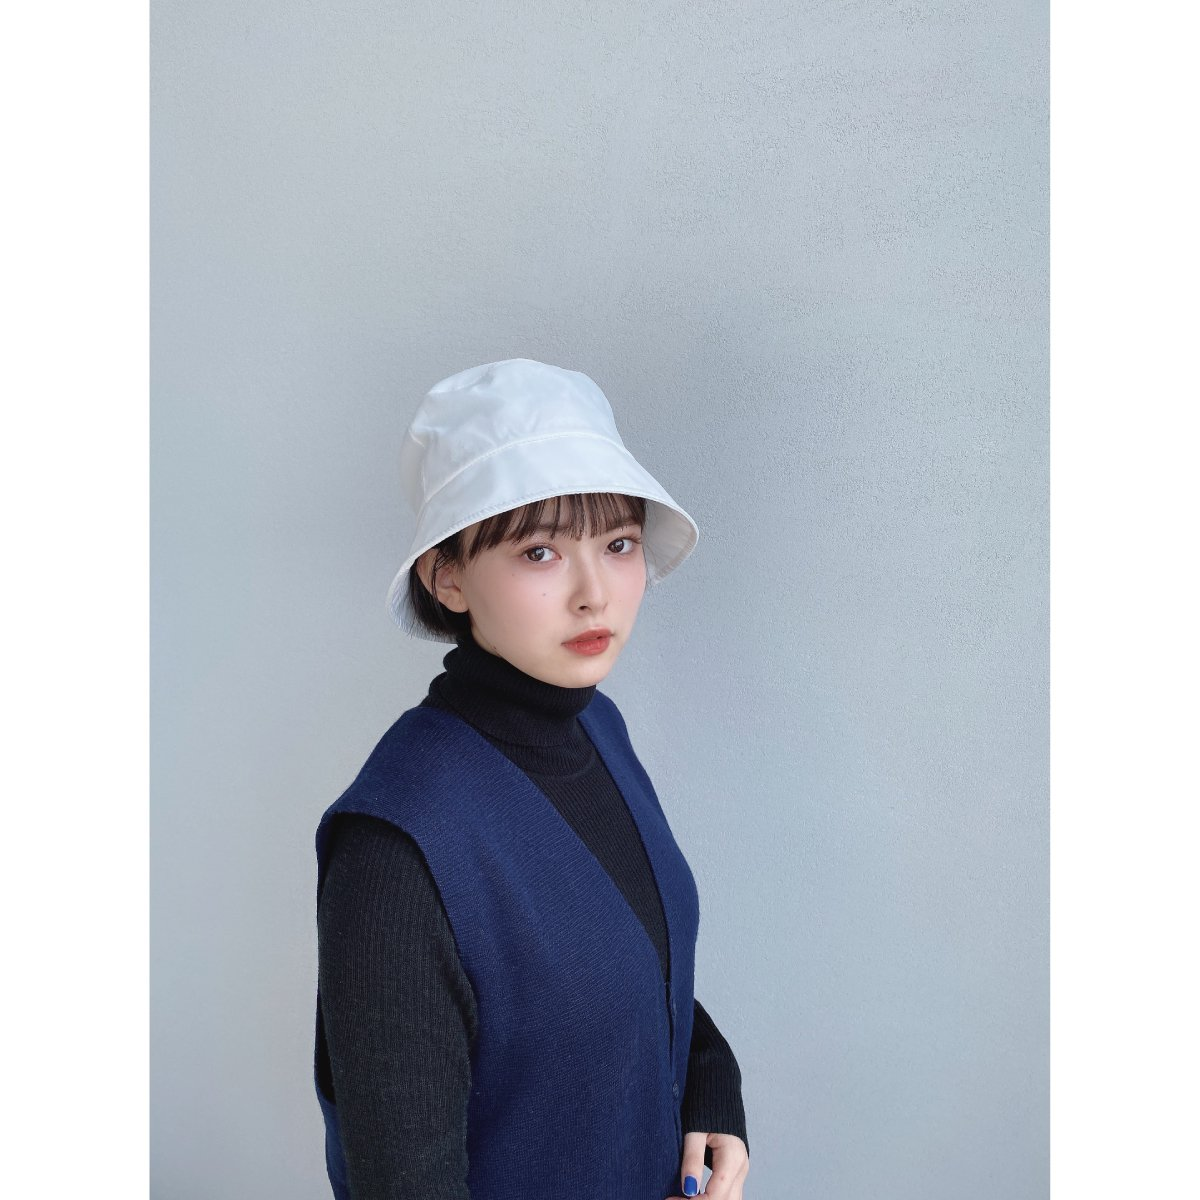 Tulle Classical Hat 詳細画像27